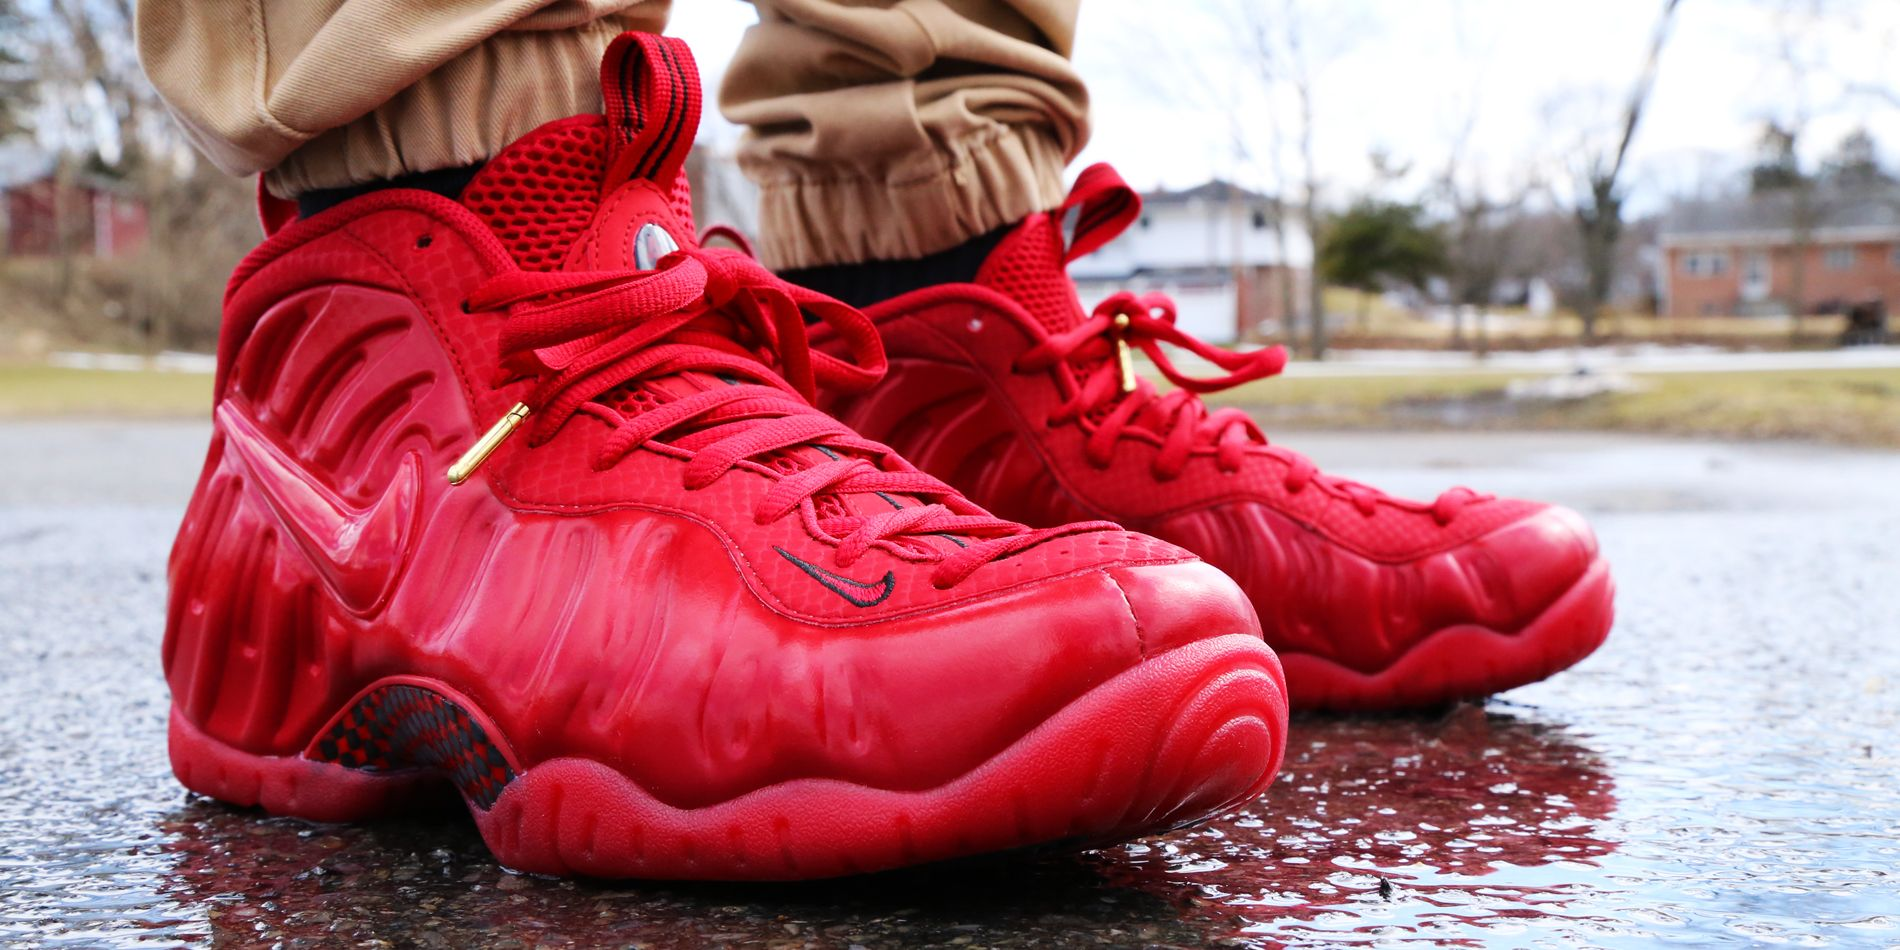 Nike Foamposite Pro goes all red for